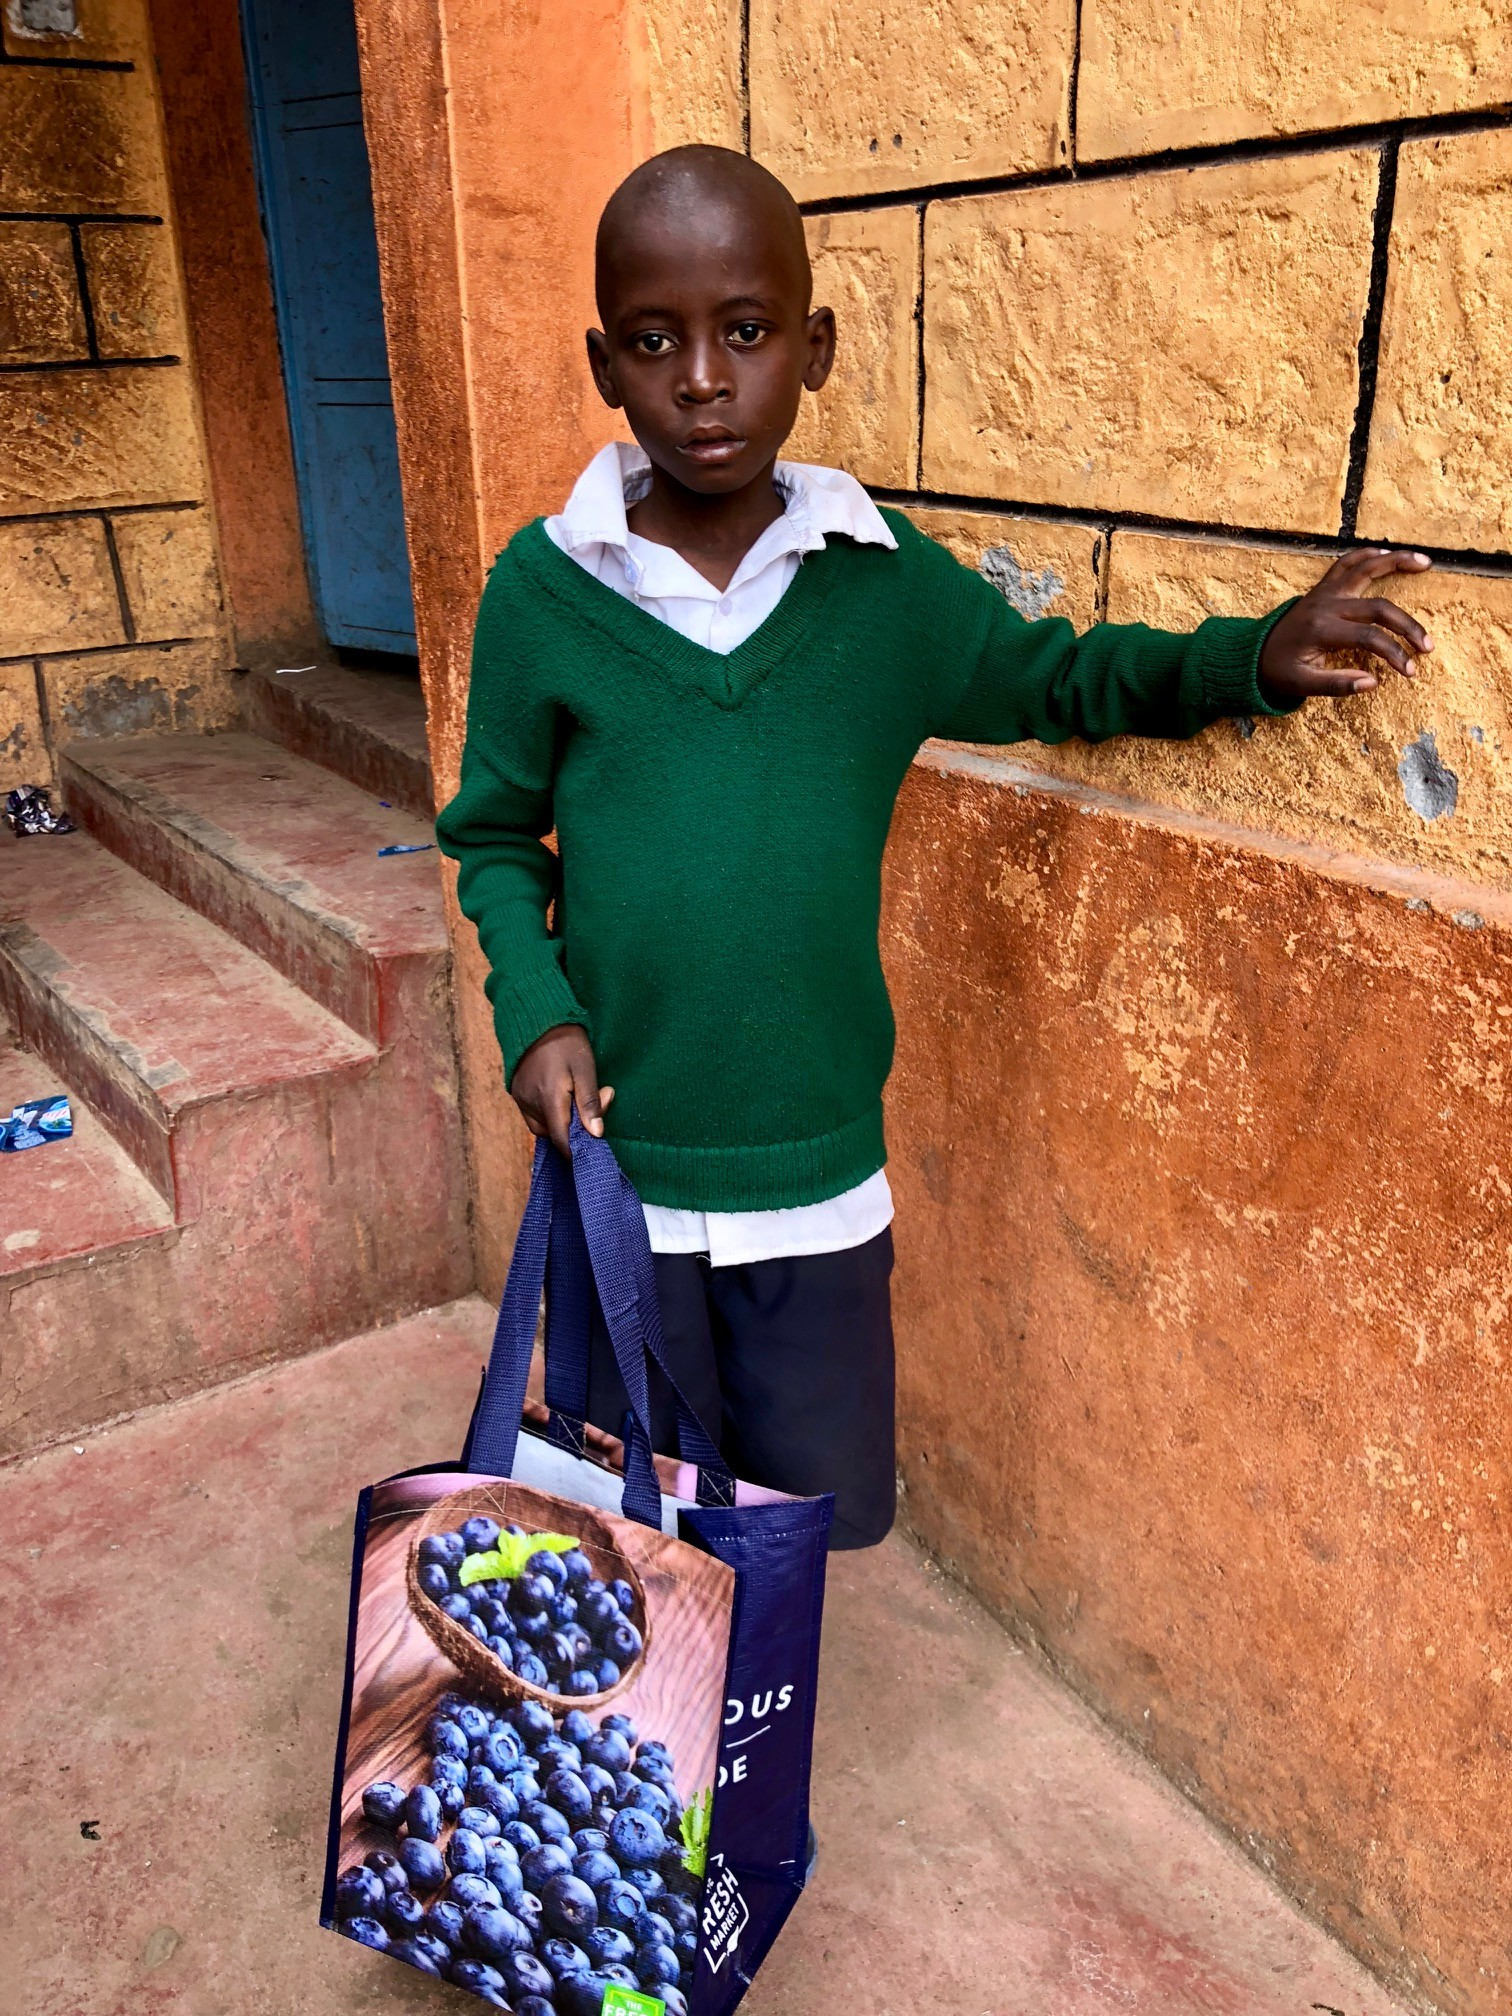 Harold is a young boy who was treated by Crossing Threshold's medical intervention. CMMB provided Crossing Threshold with the medical supplies needed to treat Harold